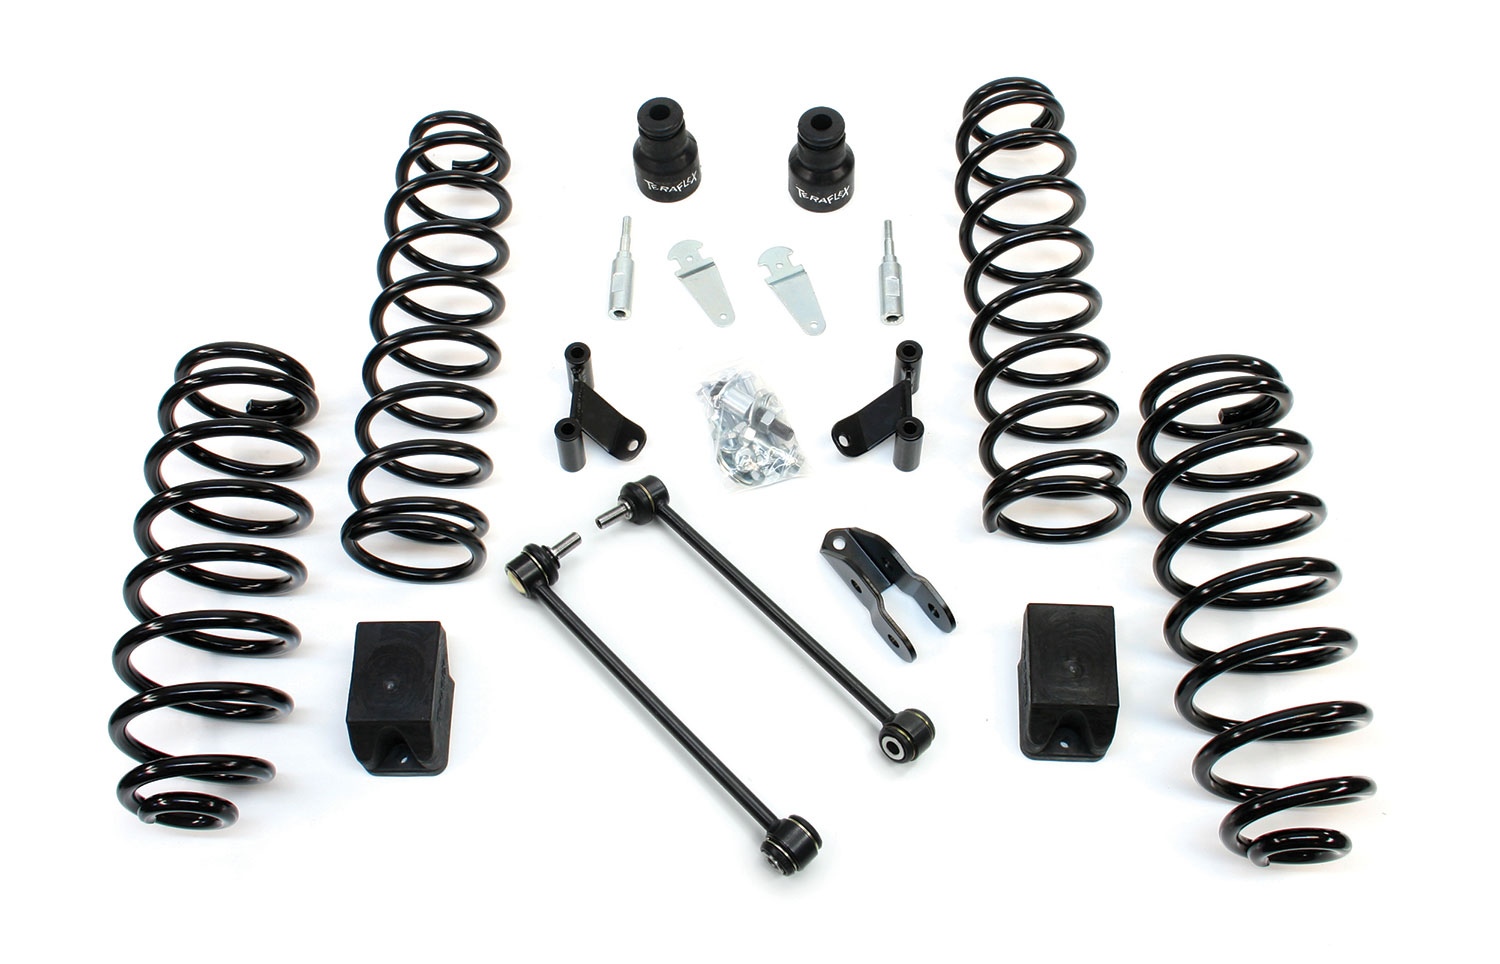 Teraflex Suspension 2.5in Spring Box Lift Kit, w/ Shock Adapters  - JK 4DR